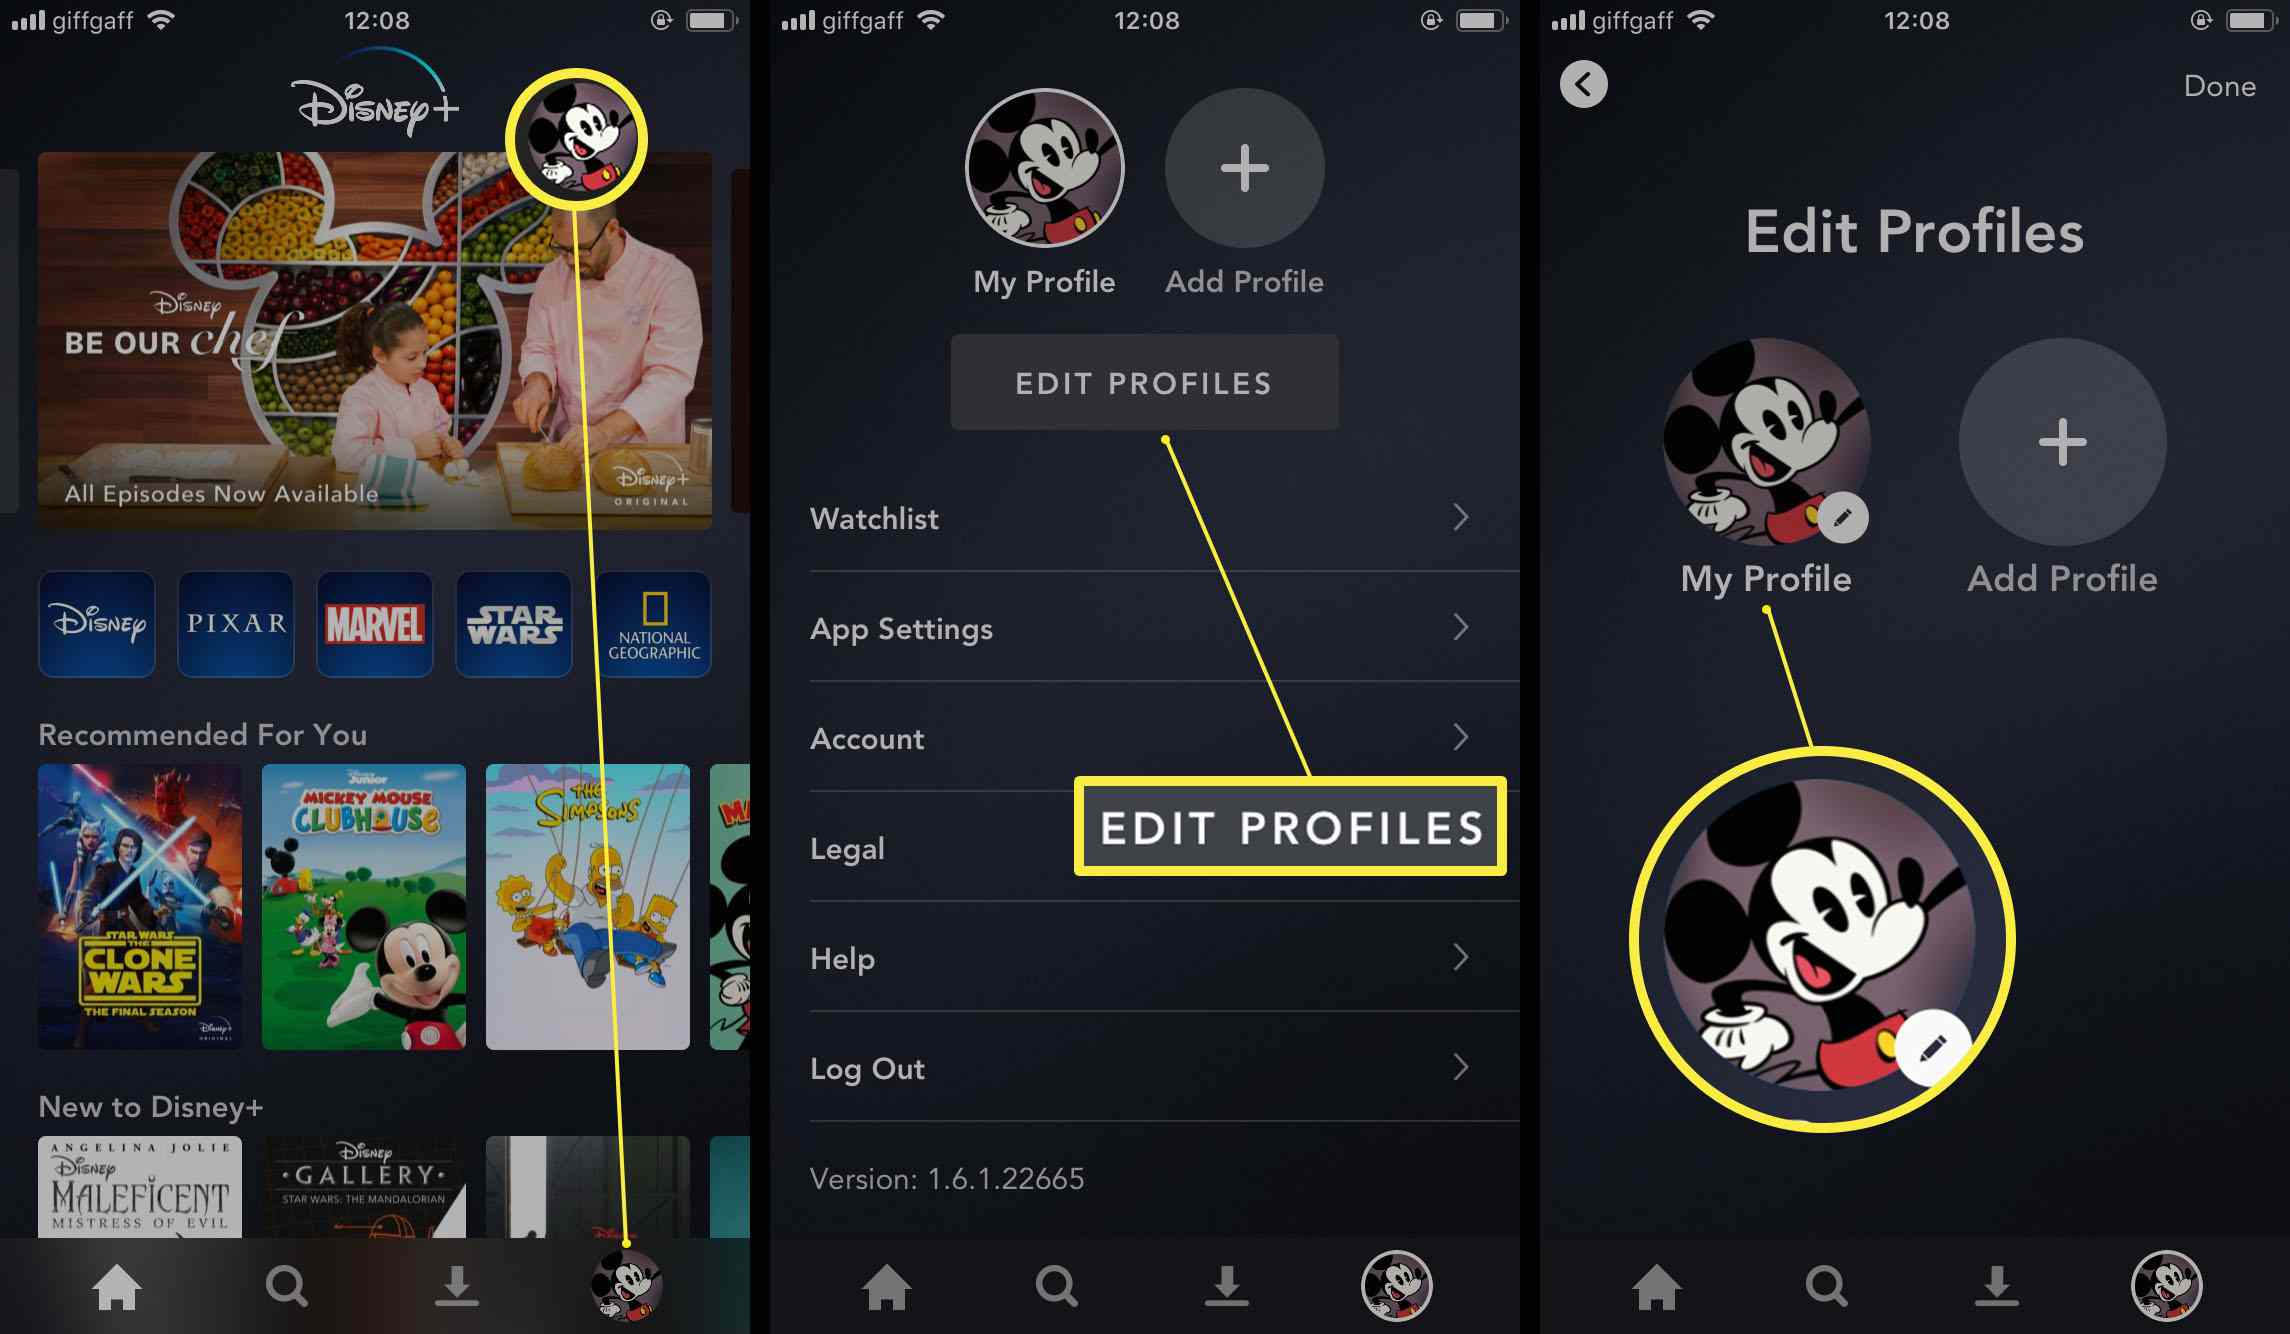 Disney+ app with the steps for editing your profile highlighted